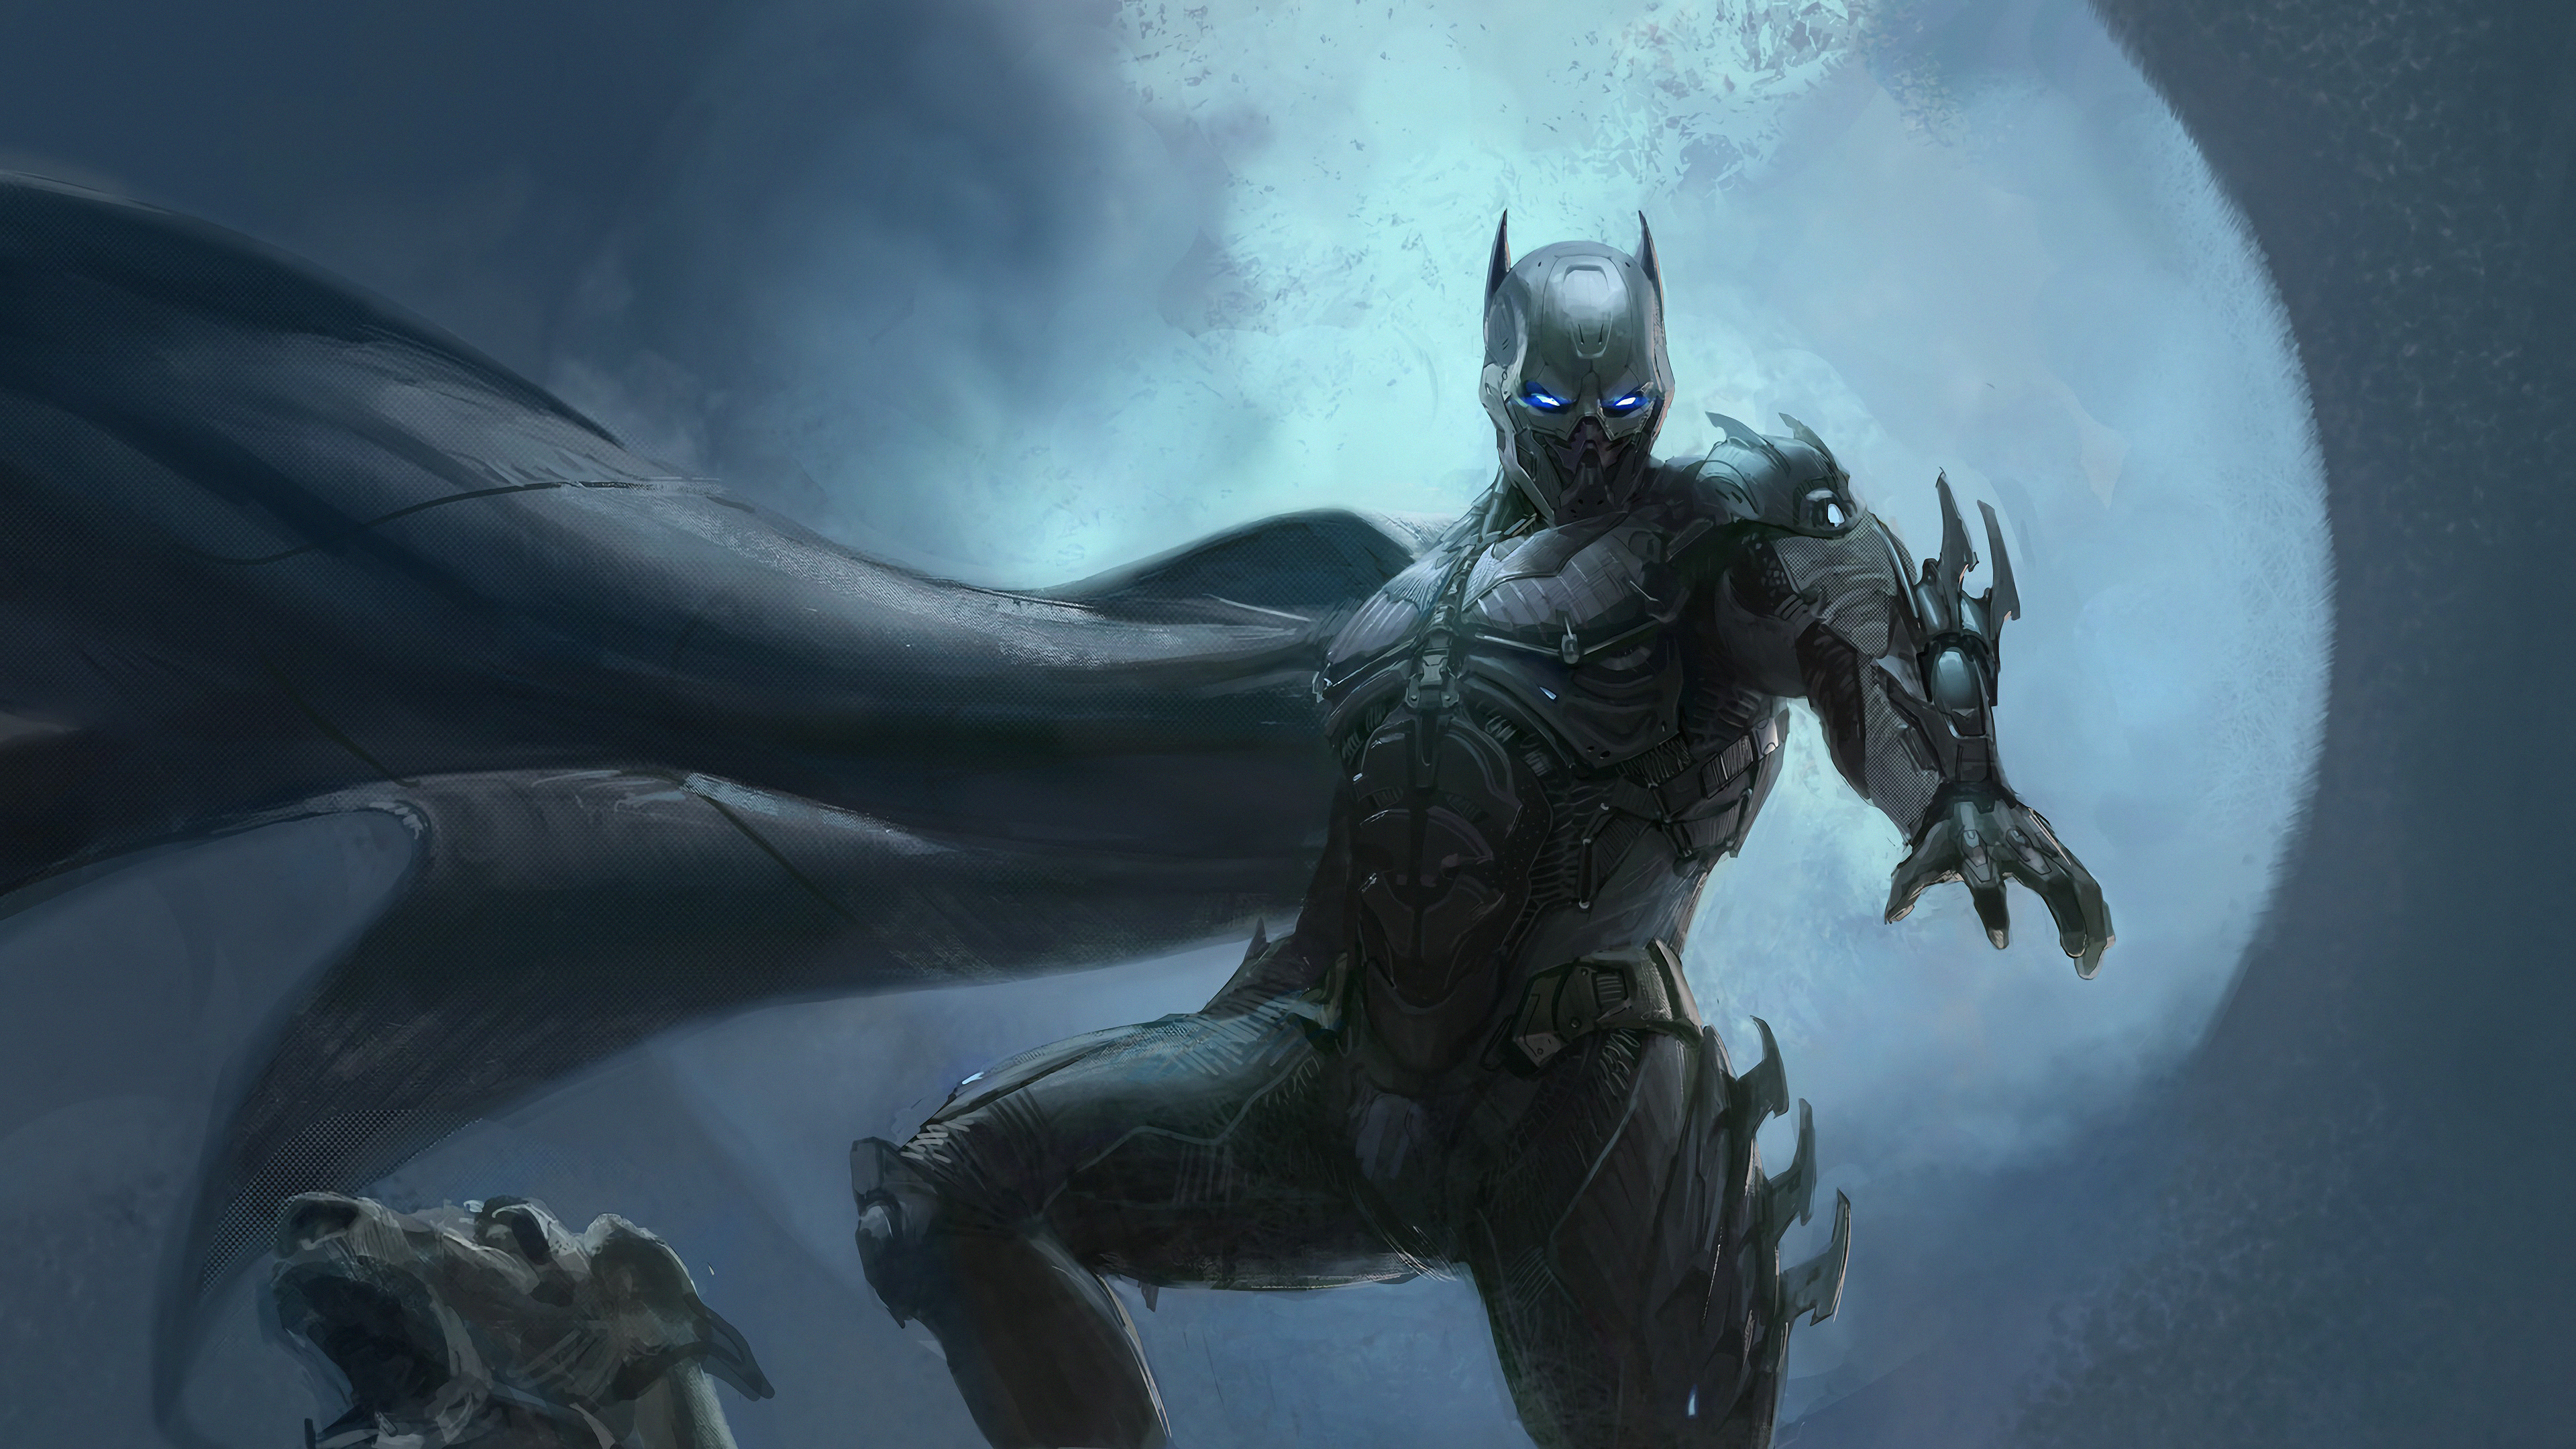 batman kinght 1568055374 - Batman Kinght - superheroes wallpapers, hd-wallpapers, digital art wallpapers, deviantart wallpapers, batman wallpapers, artwork wallpapers, 4k-wallpapers